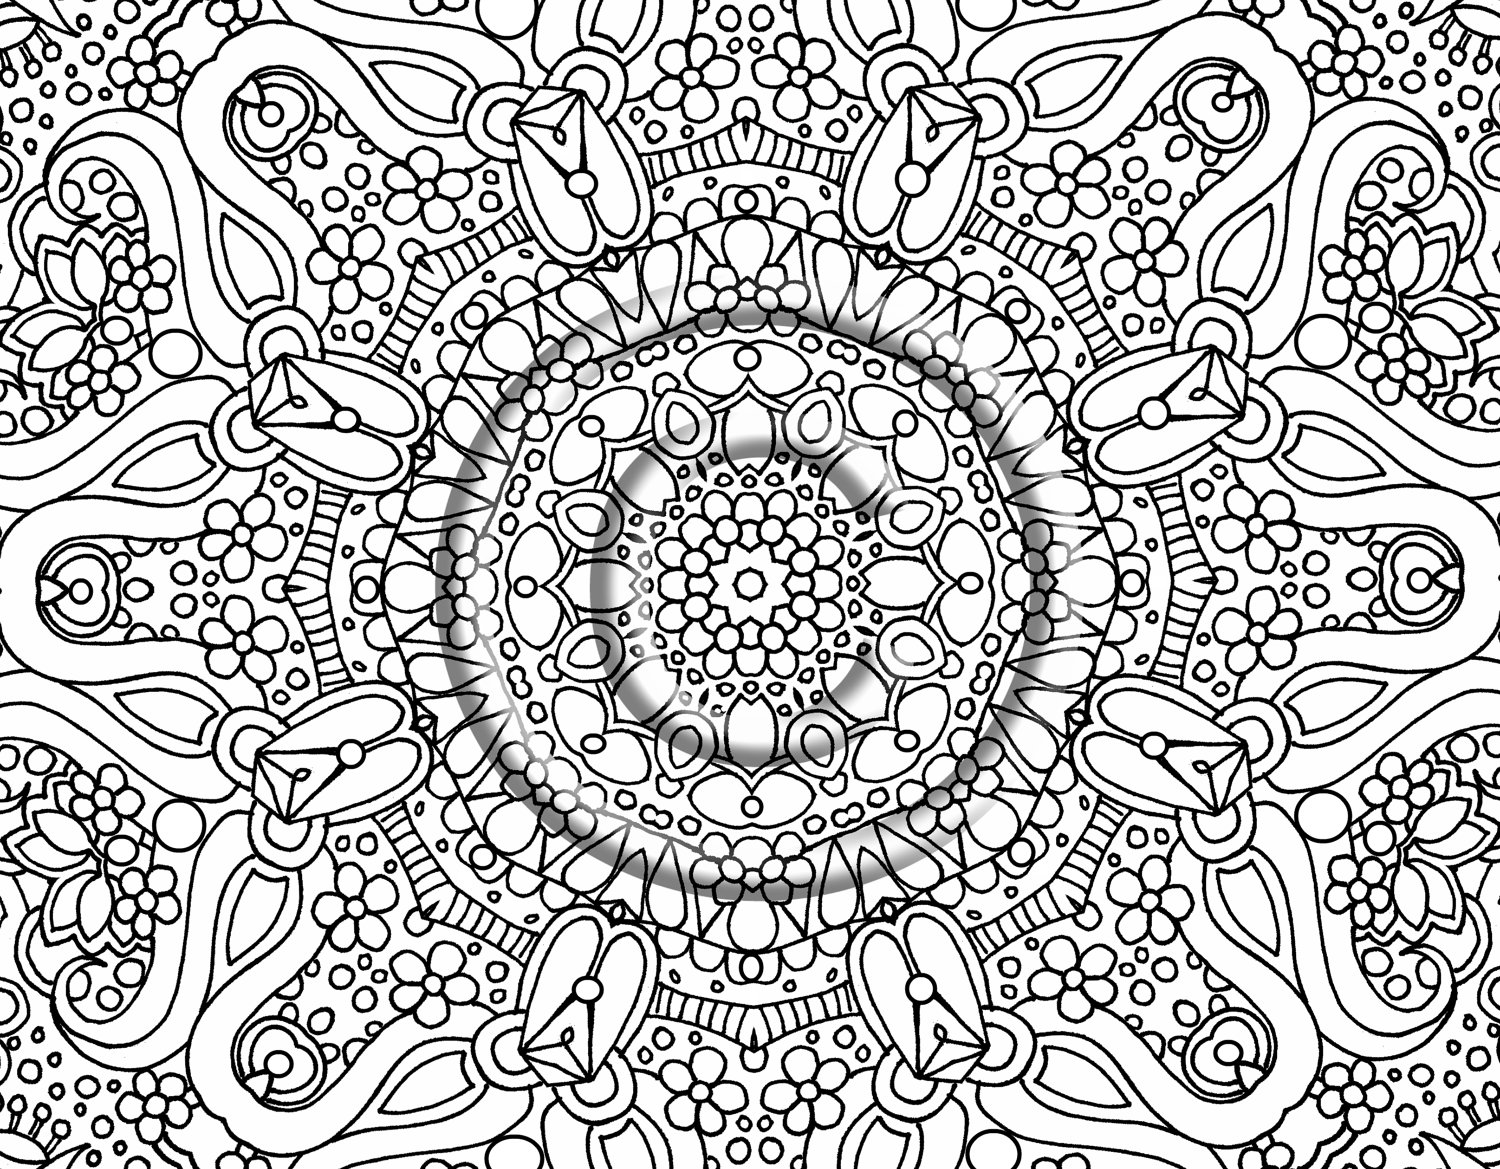 free printable coloring pages of flowers free printable flower coloring pages for kids best pages free of printable coloring flowers